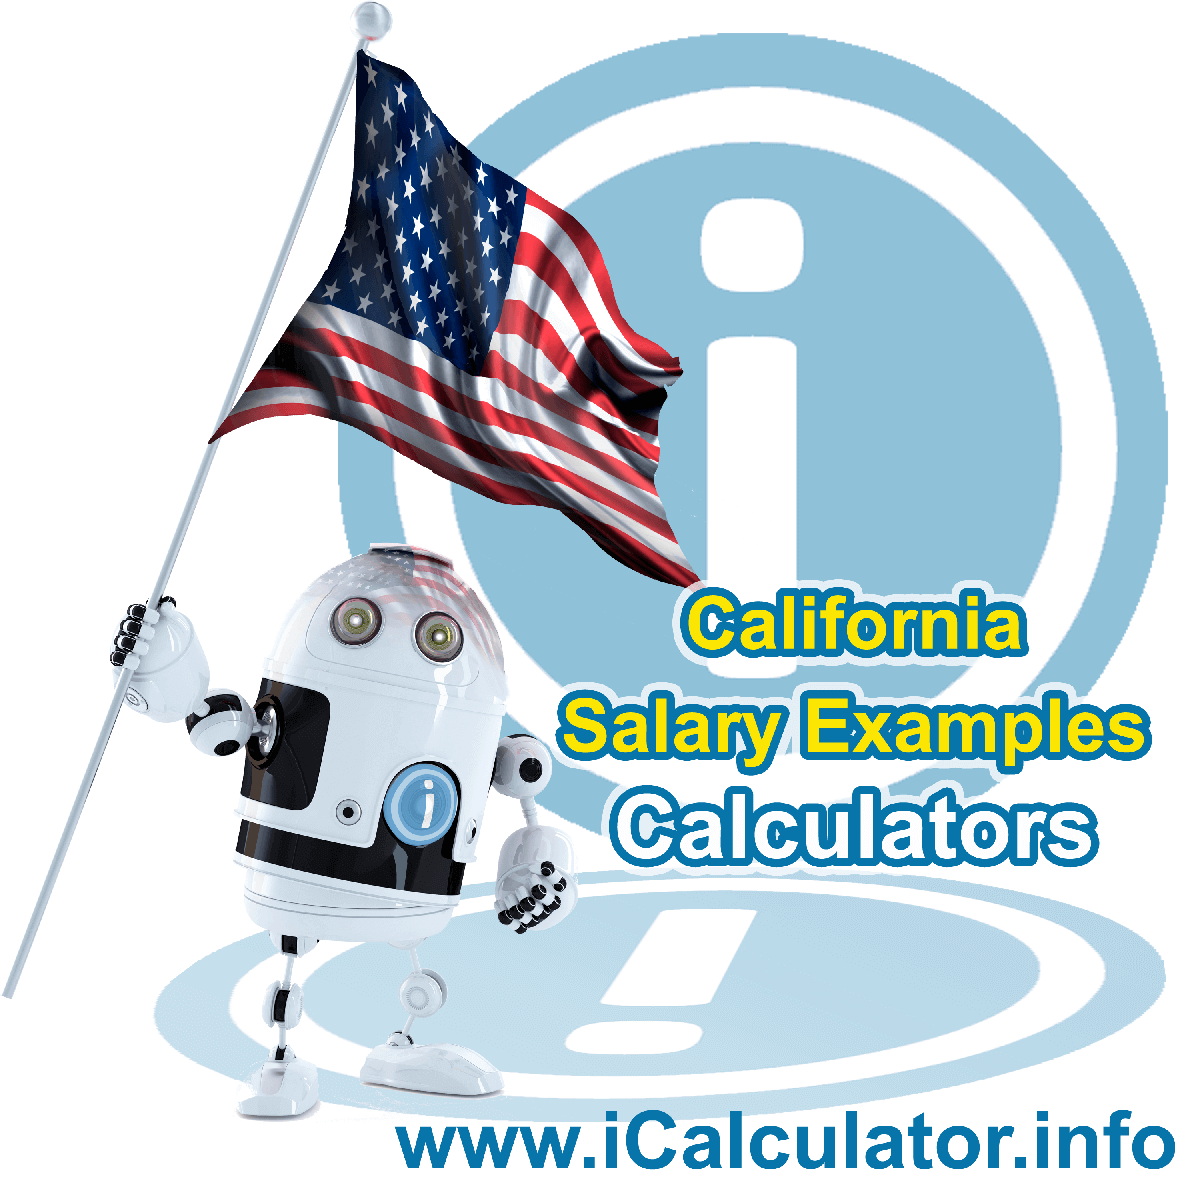 California Salary Example for $35,000.00 in 2020 | iCalculator | $35,000.00 salary example for employee and employer paying California State tincome taxes. Detailed salary after tax calculation including California State Tax, Federal State Tax, Medicare Deductions, Social Security, Capital Gains and other income tax and salary deductions complete with supporting California state tax tables